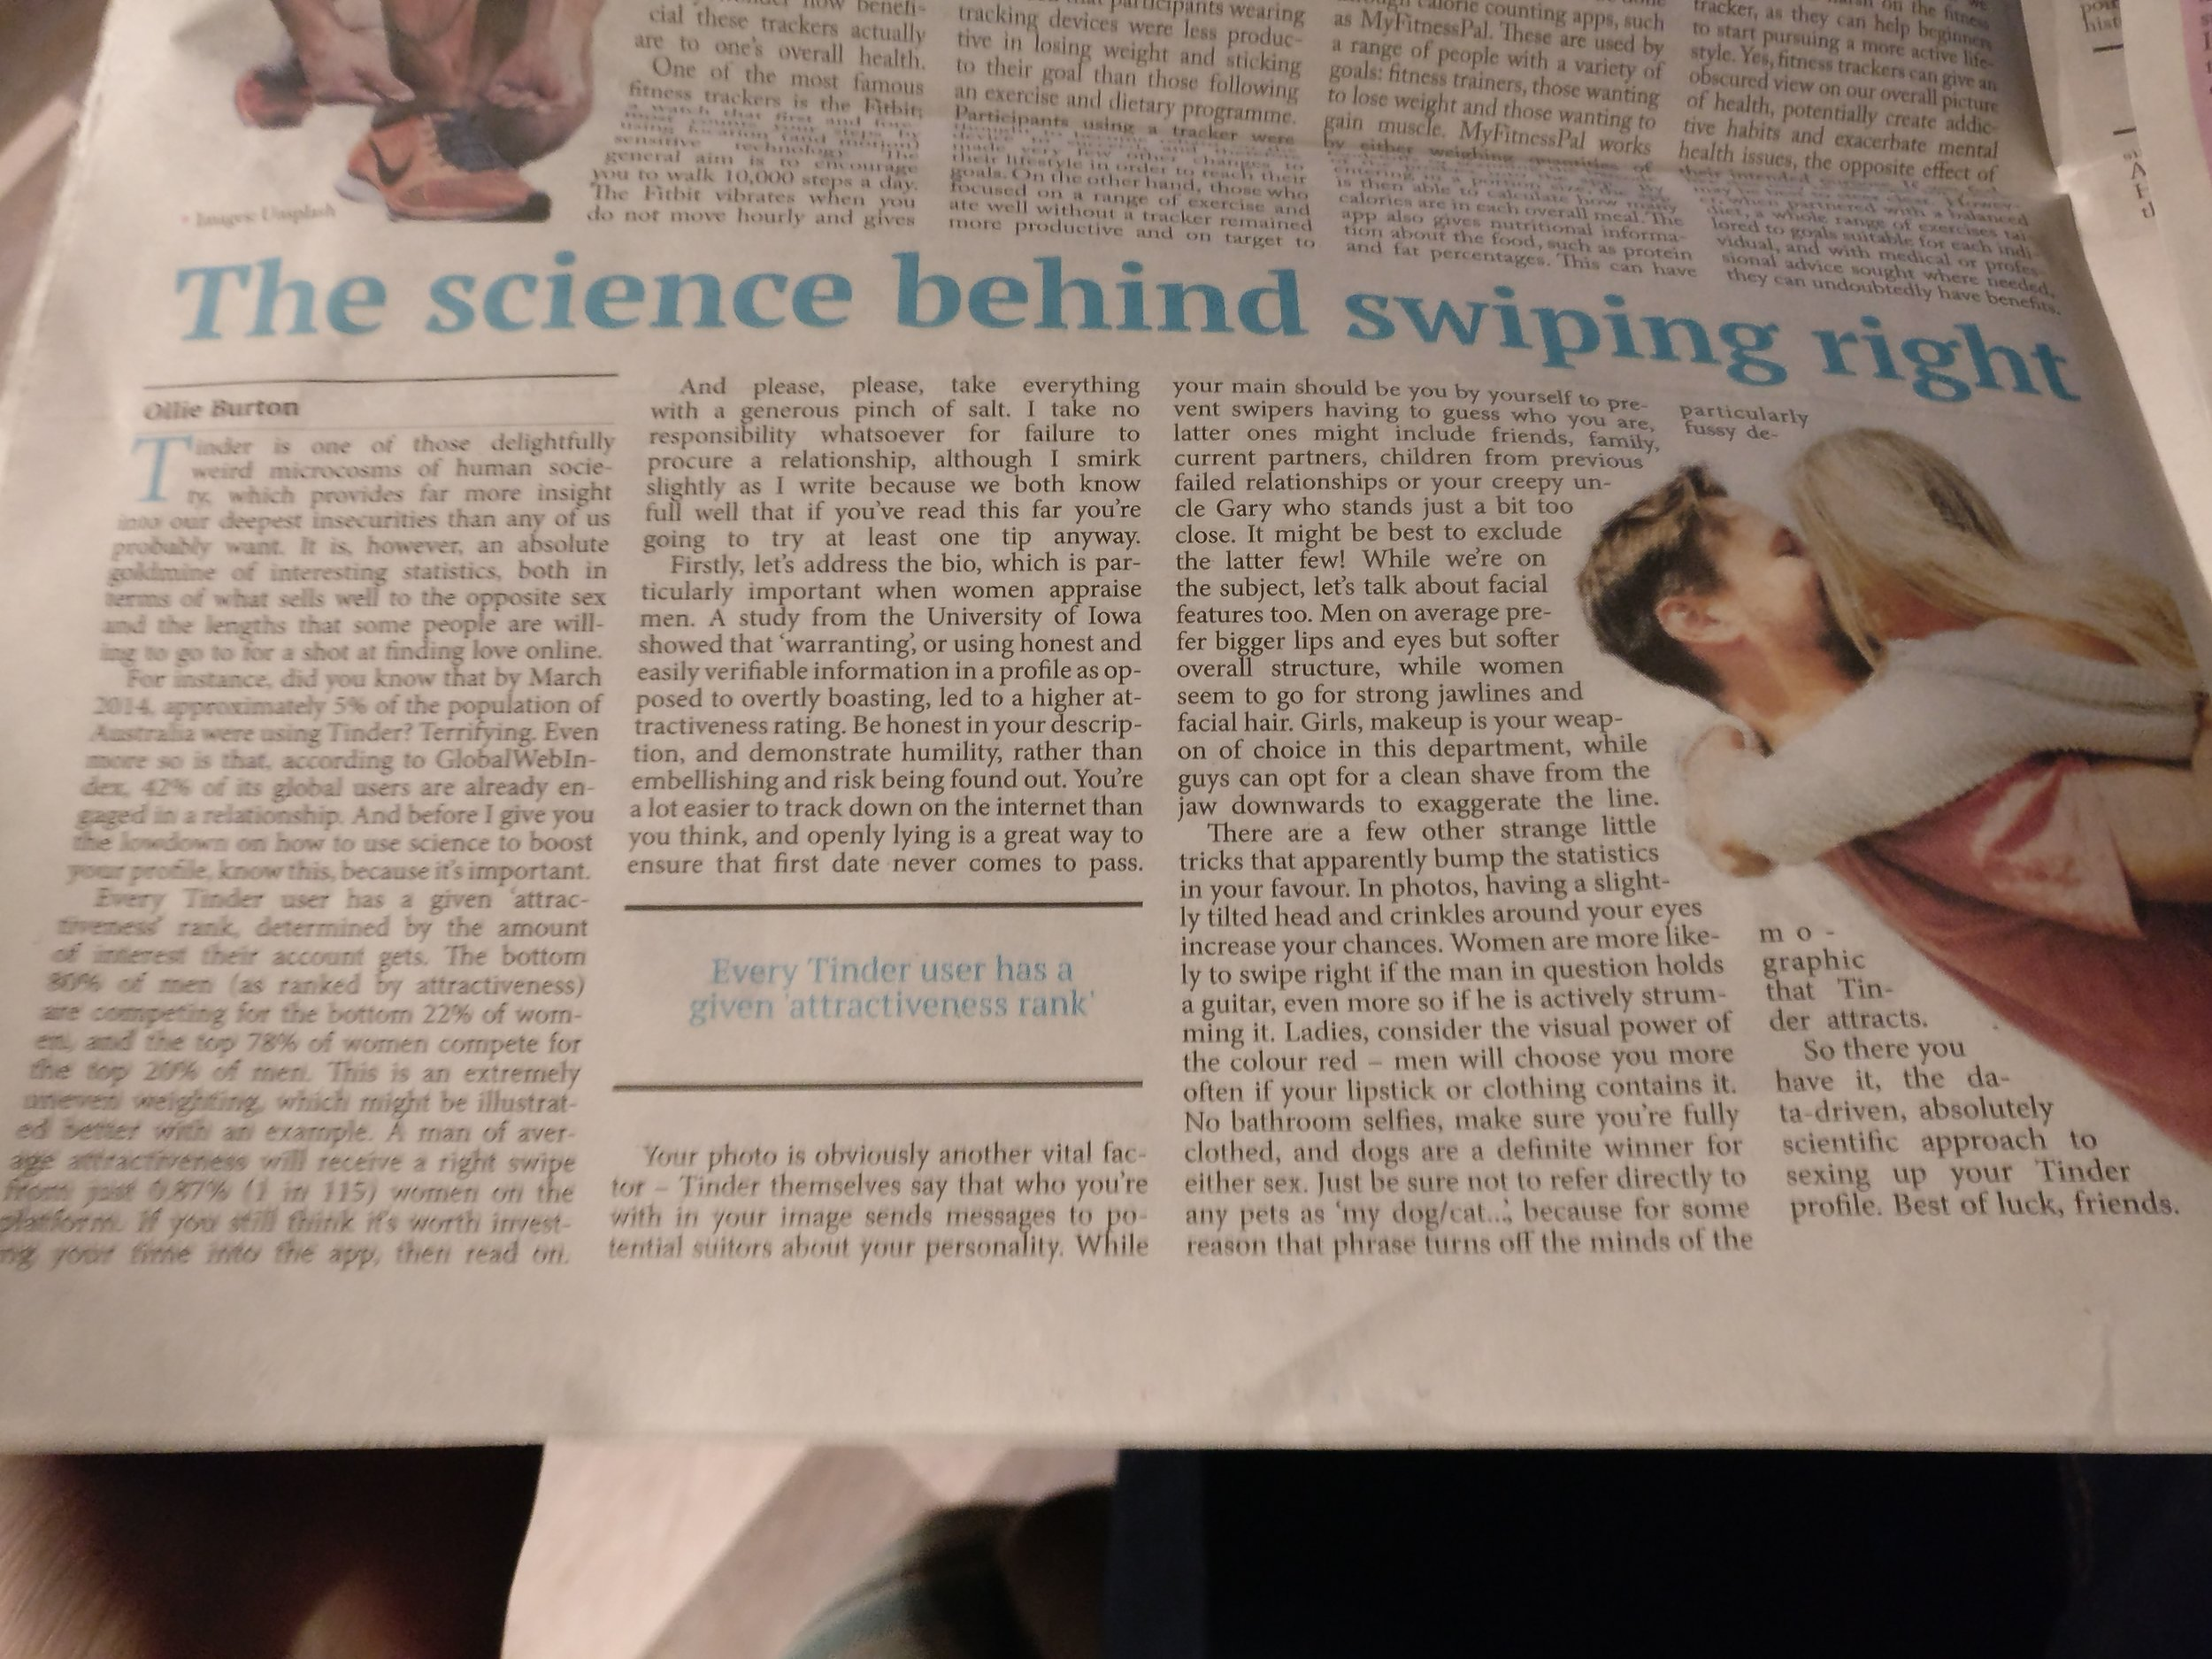 I also saw that my first print article for The Boar, concerning the science of Tinder had been published in this week's issue. Fun times.